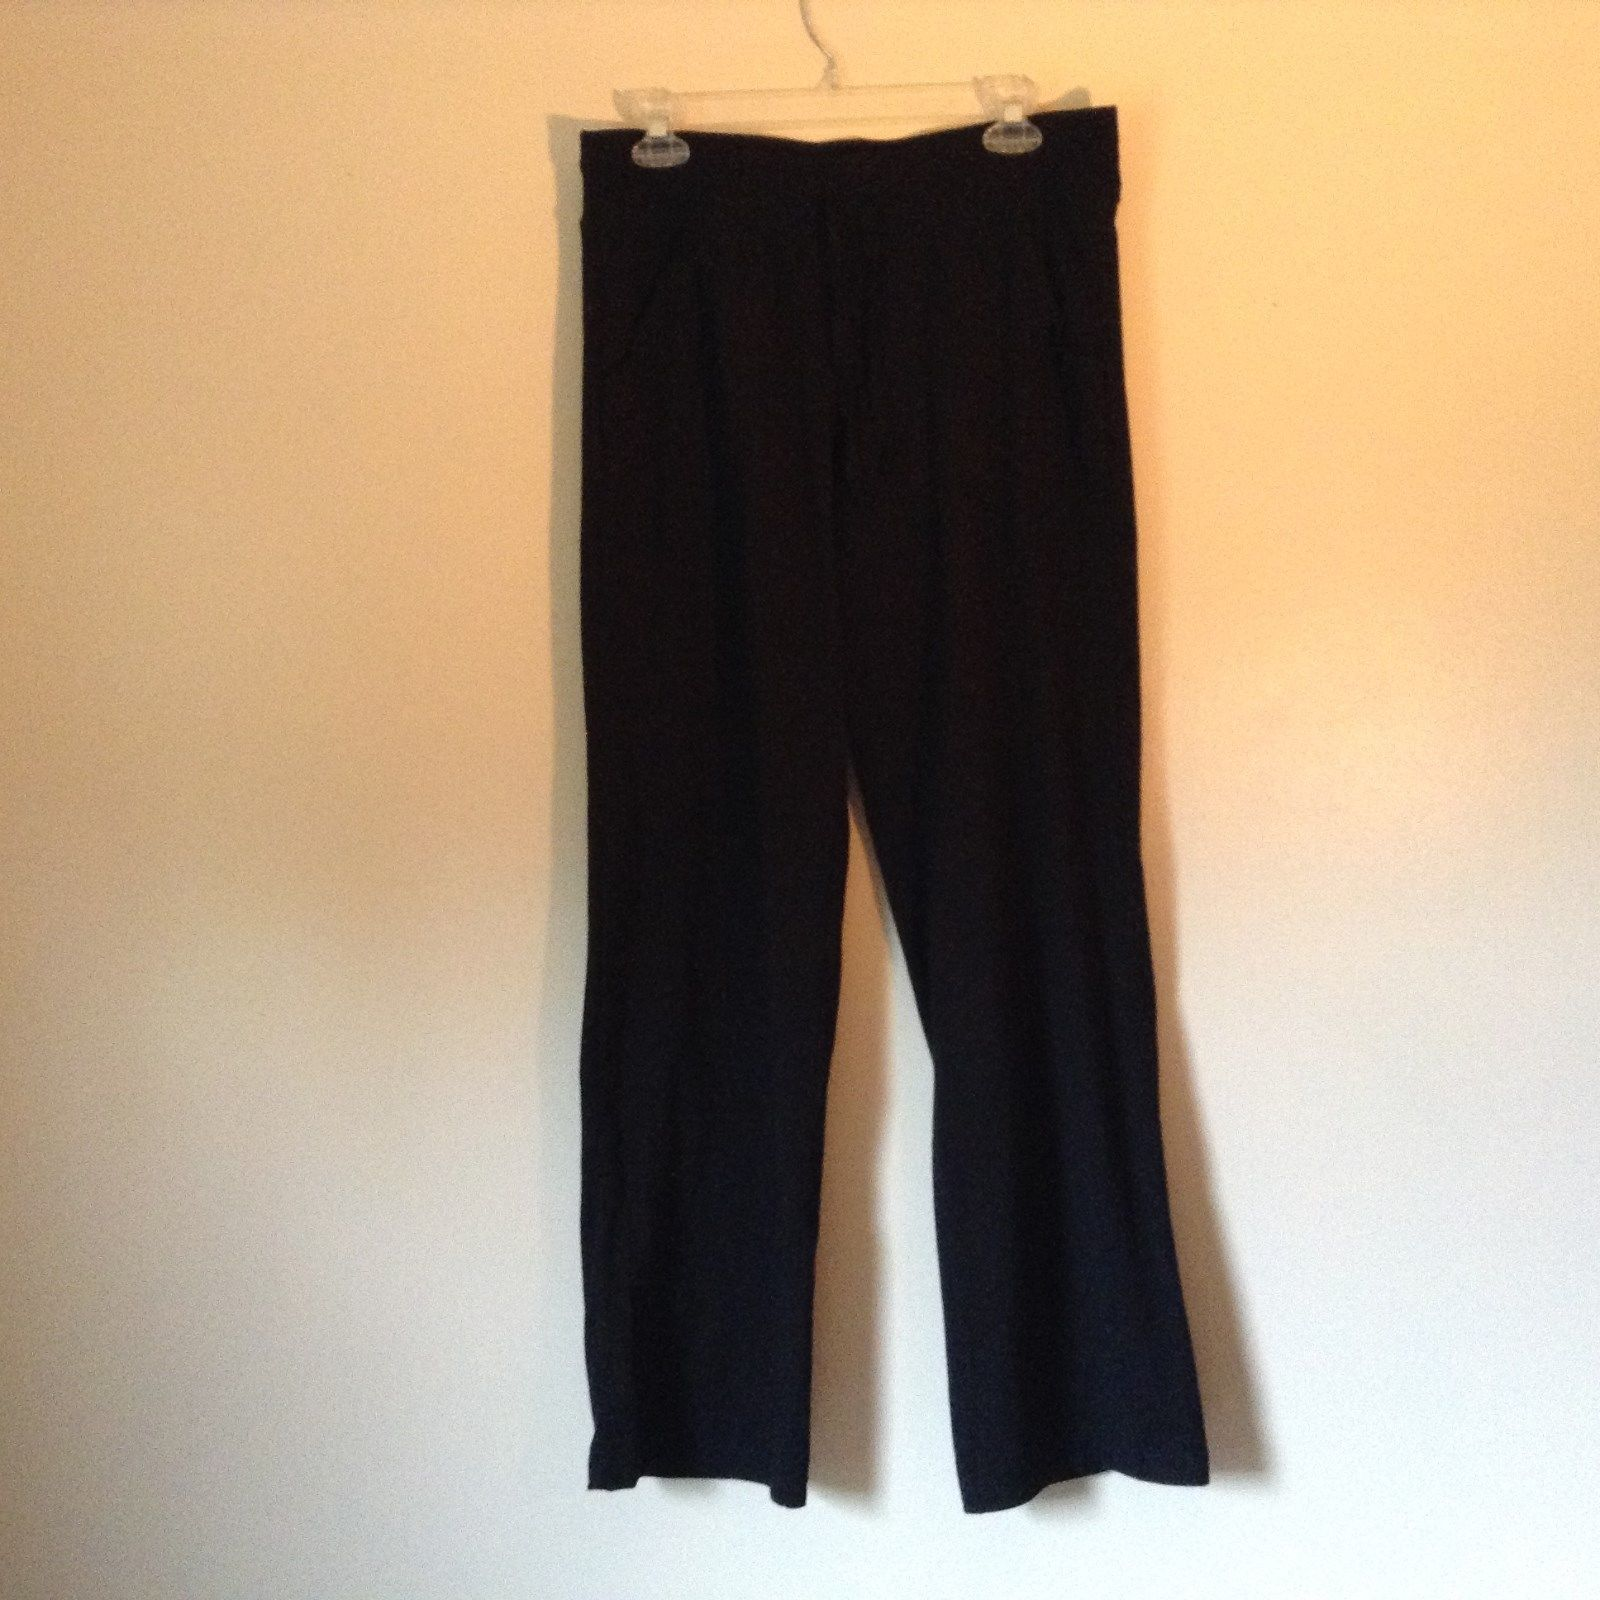 Black Sweat Pants with Pockets Danskin Now Stretchy Size Medium 8 to 10